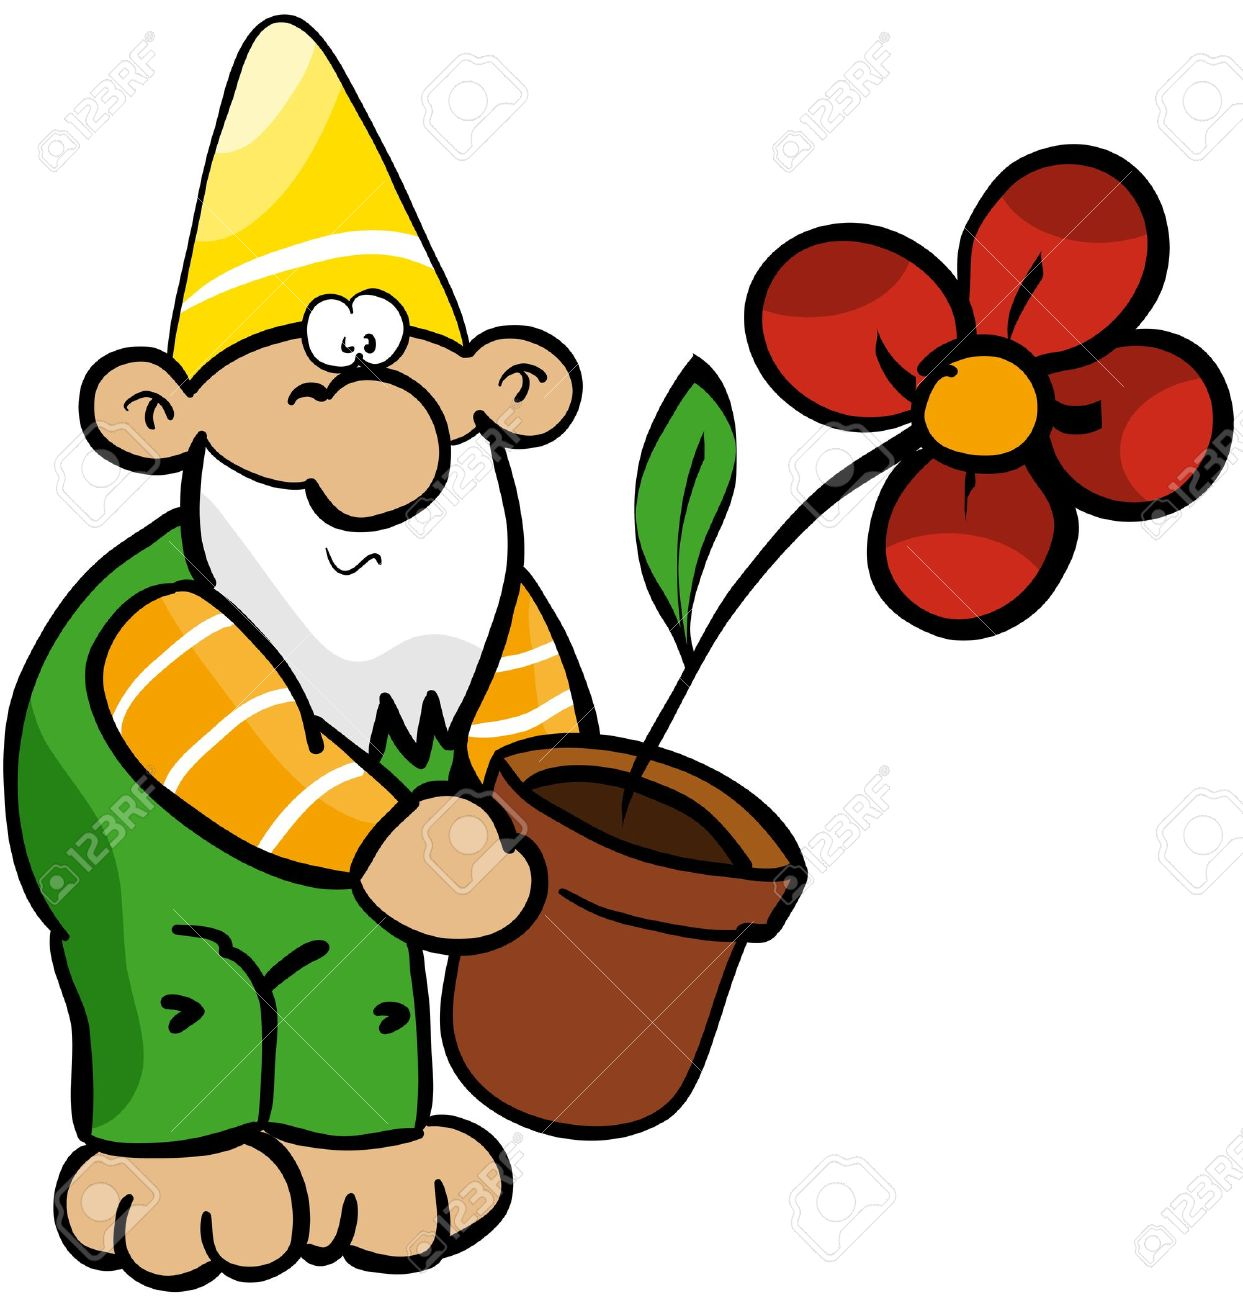 Gnome Clip Art: Garden Gnome Clipart At GetDrawings.com